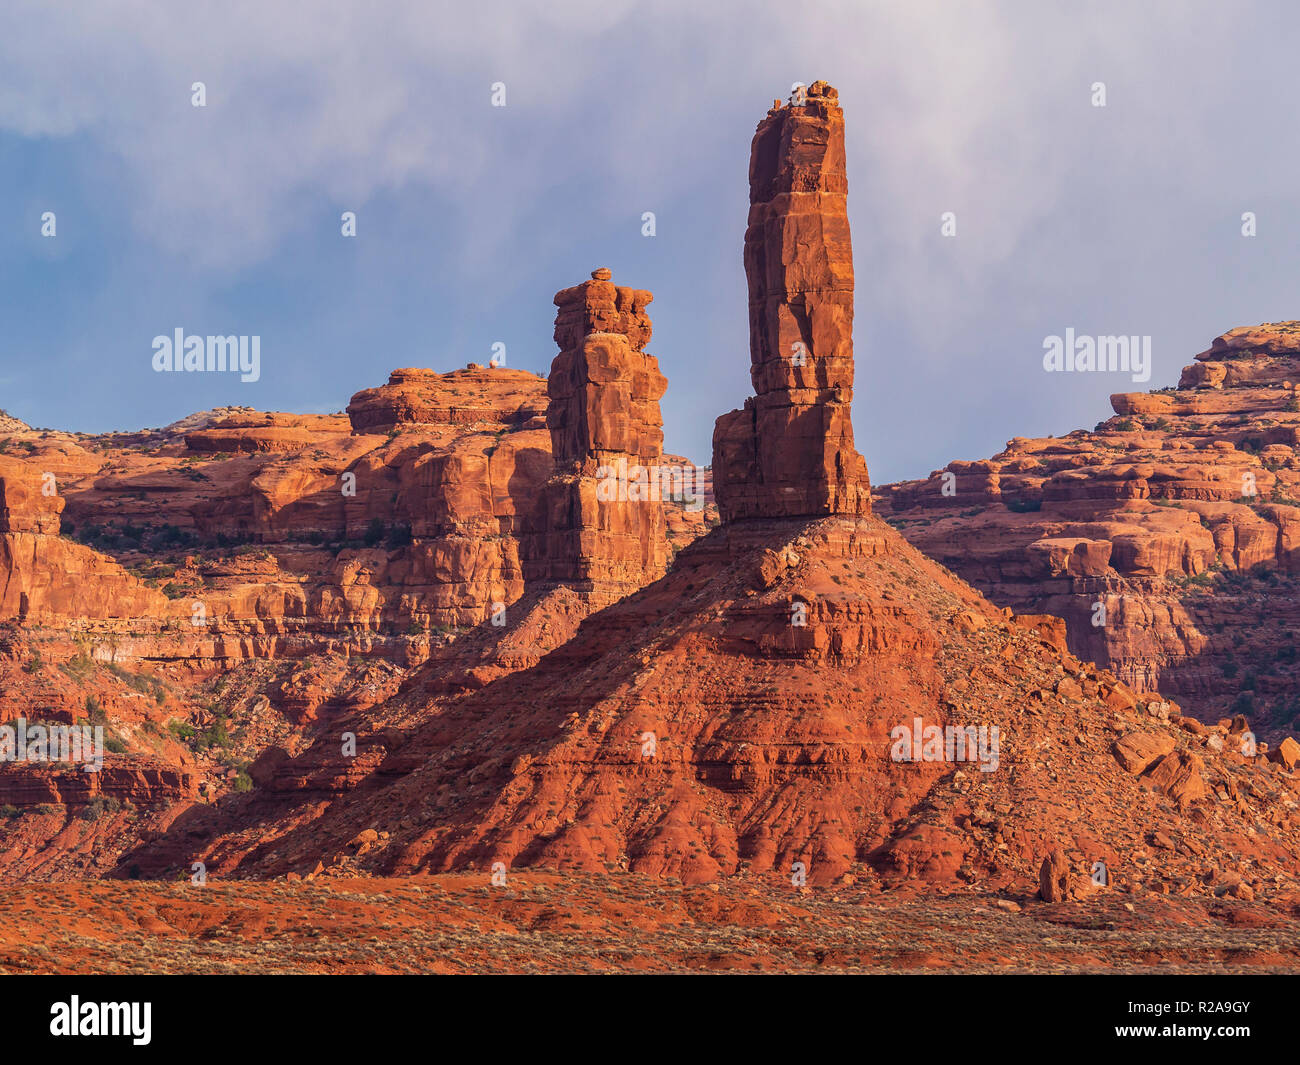 Pillar formations, Valley of the Gods near Bluff, Utah. - Stock Image